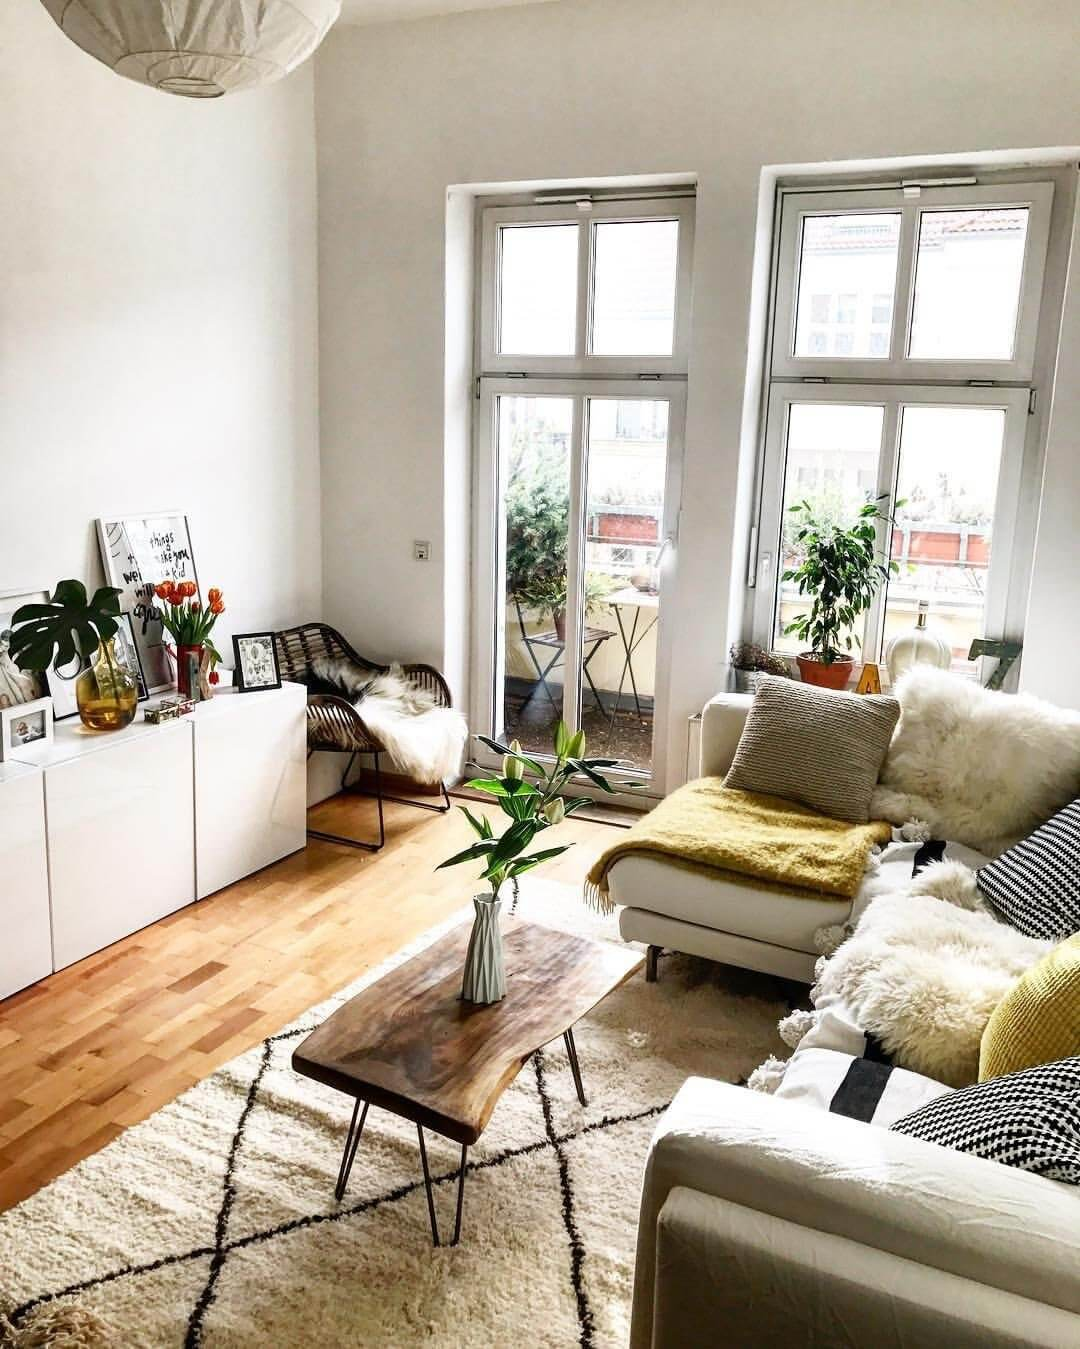 20 Best Small Apartment Living Room Decor and Design Ideas ... on Small Living Room Ideas 2019  id=33753